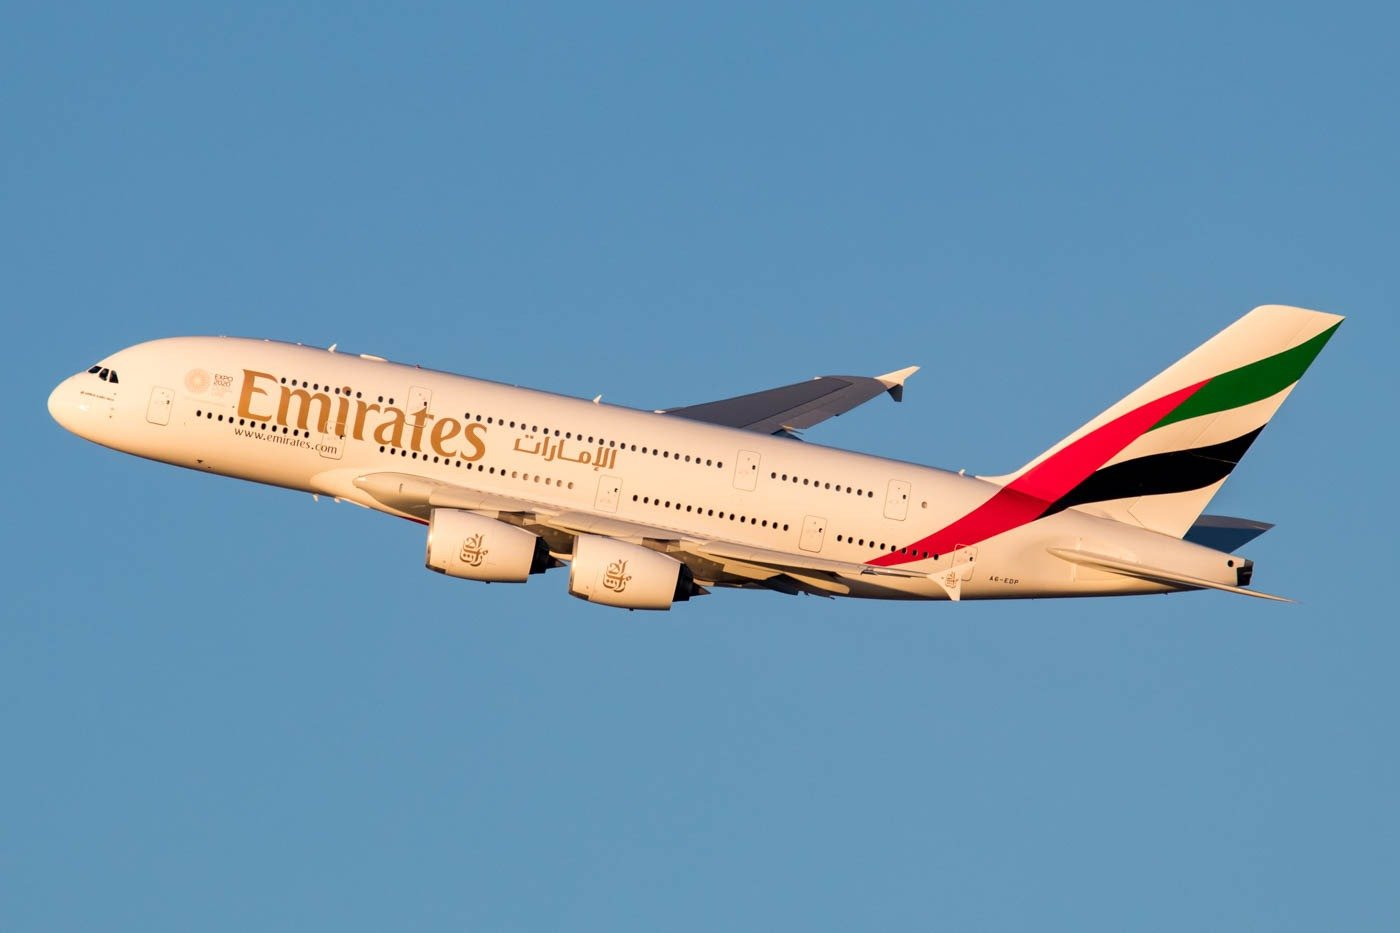 Emirates Airbus A380-800 Departing New York JFK